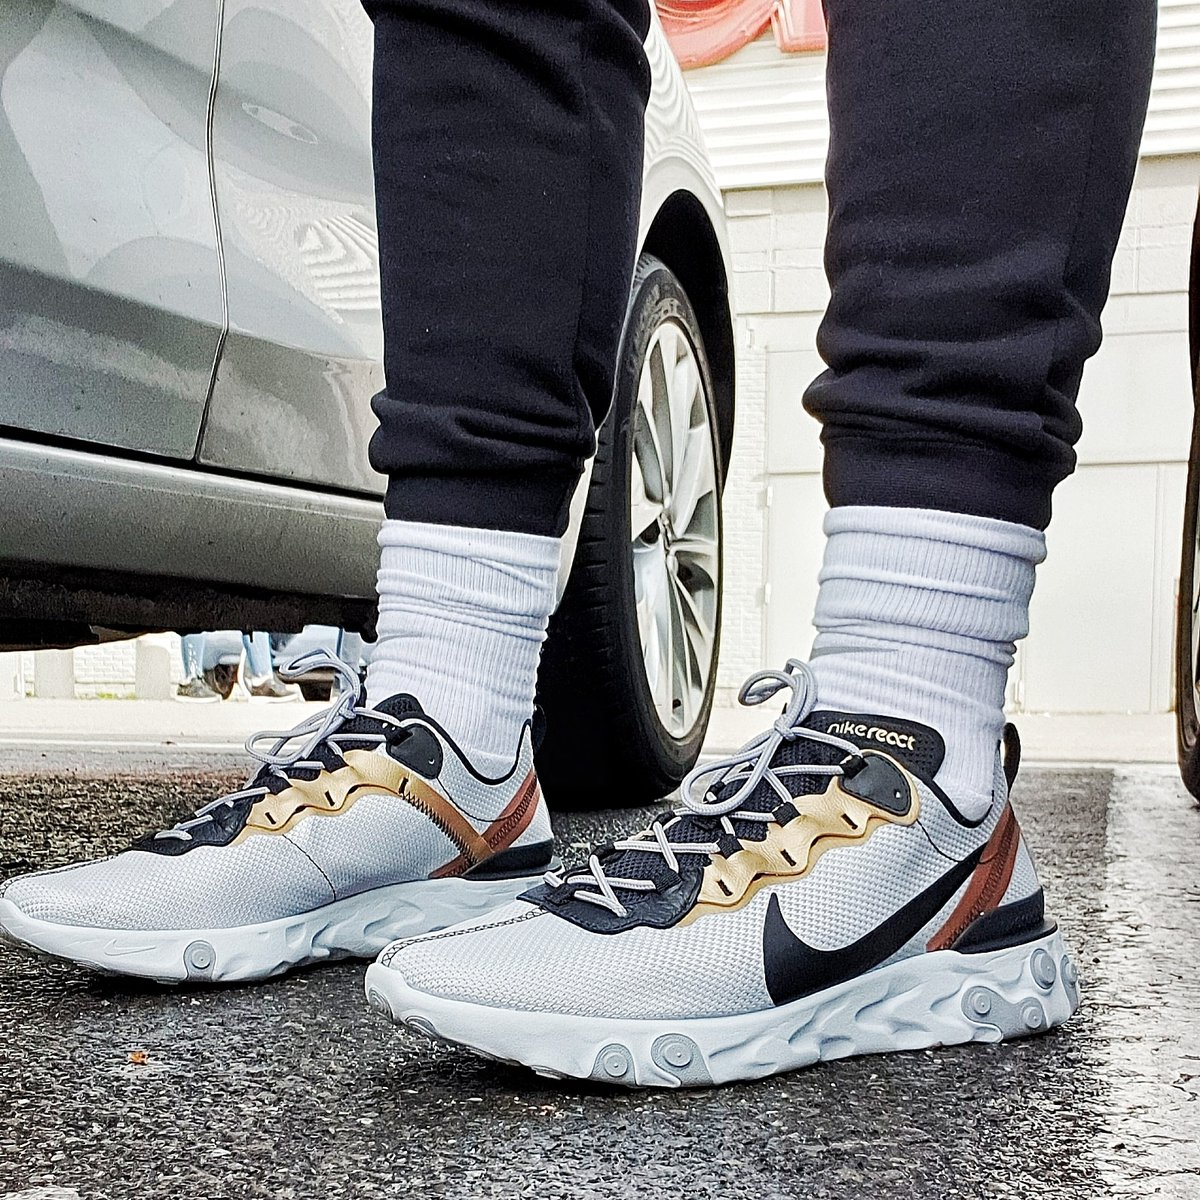 Nike React Element 55.. One of the best Nike shoe of 2019 for sure.. #nike #React #sneakers pic.twitter.com/unPBkJfoRE